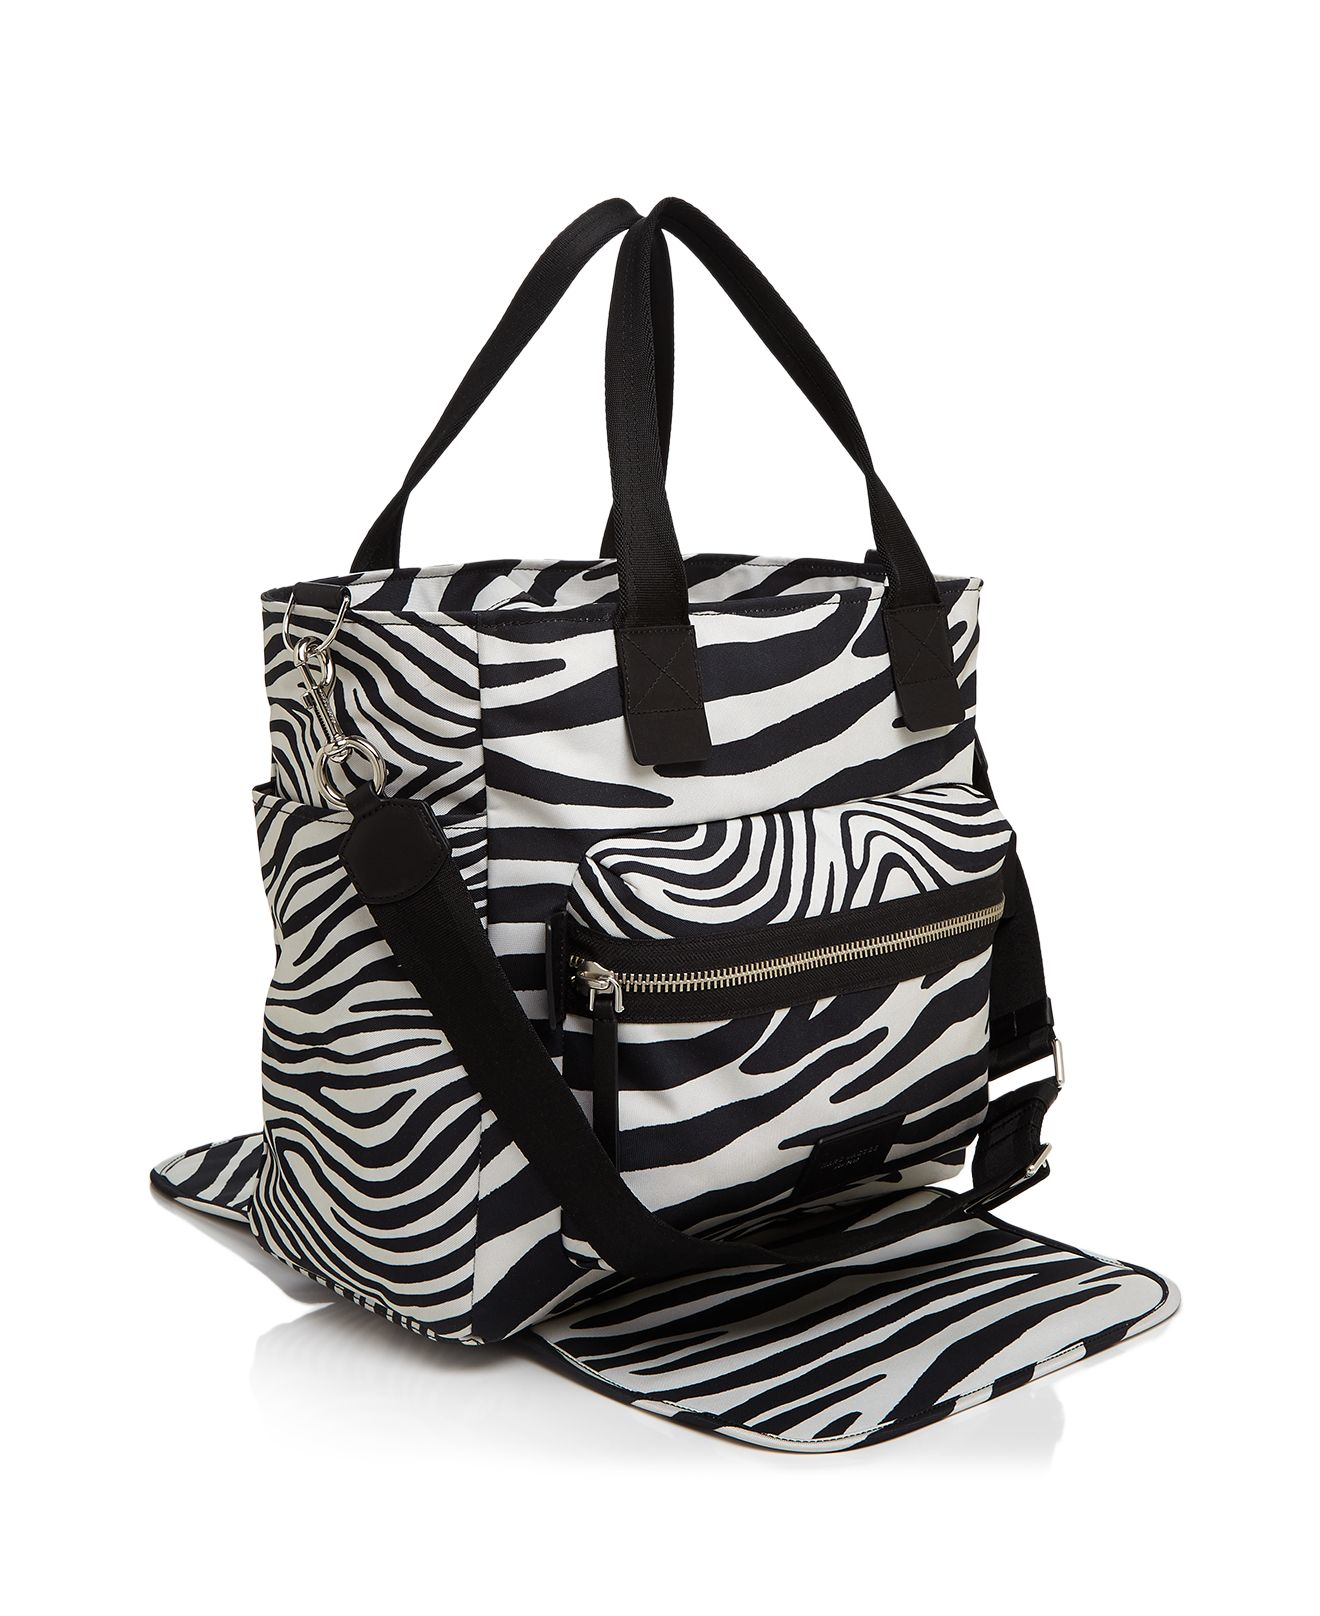 marc jacobs zebra biker diaper bag in black lyst. Black Bedroom Furniture Sets. Home Design Ideas